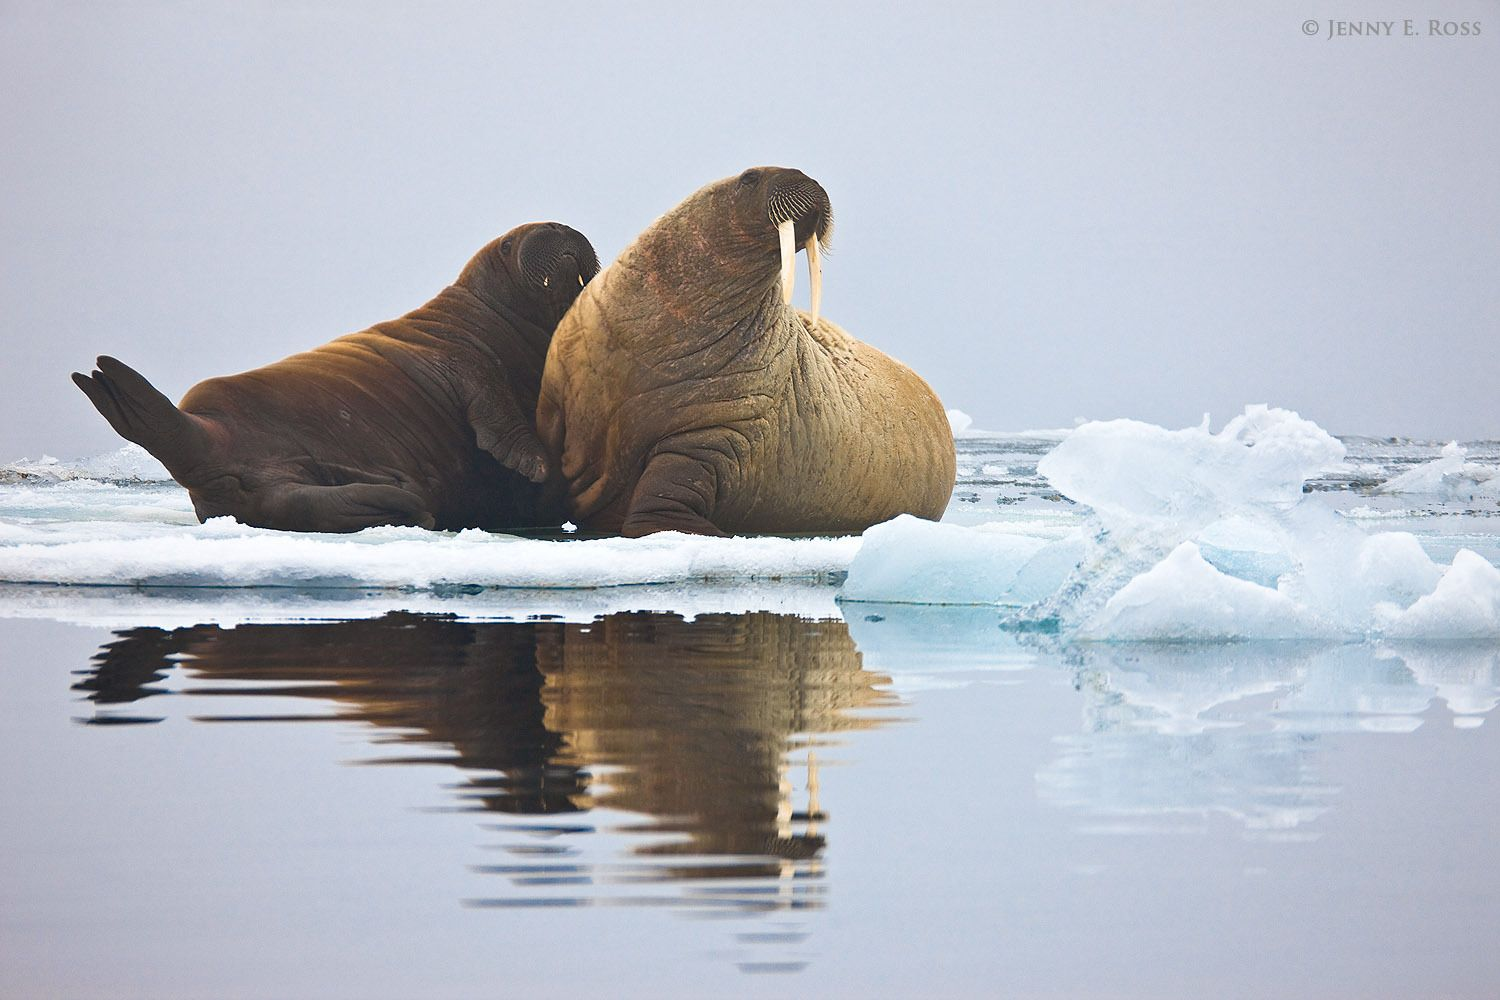 An Atlantic Walrus (Odobenus rosmarus rosmarus) mother and calf rest on sea ice in the Barents Sea (Arctic Ocean) near Stoliczka Island in Franz Josef Land, Russia.